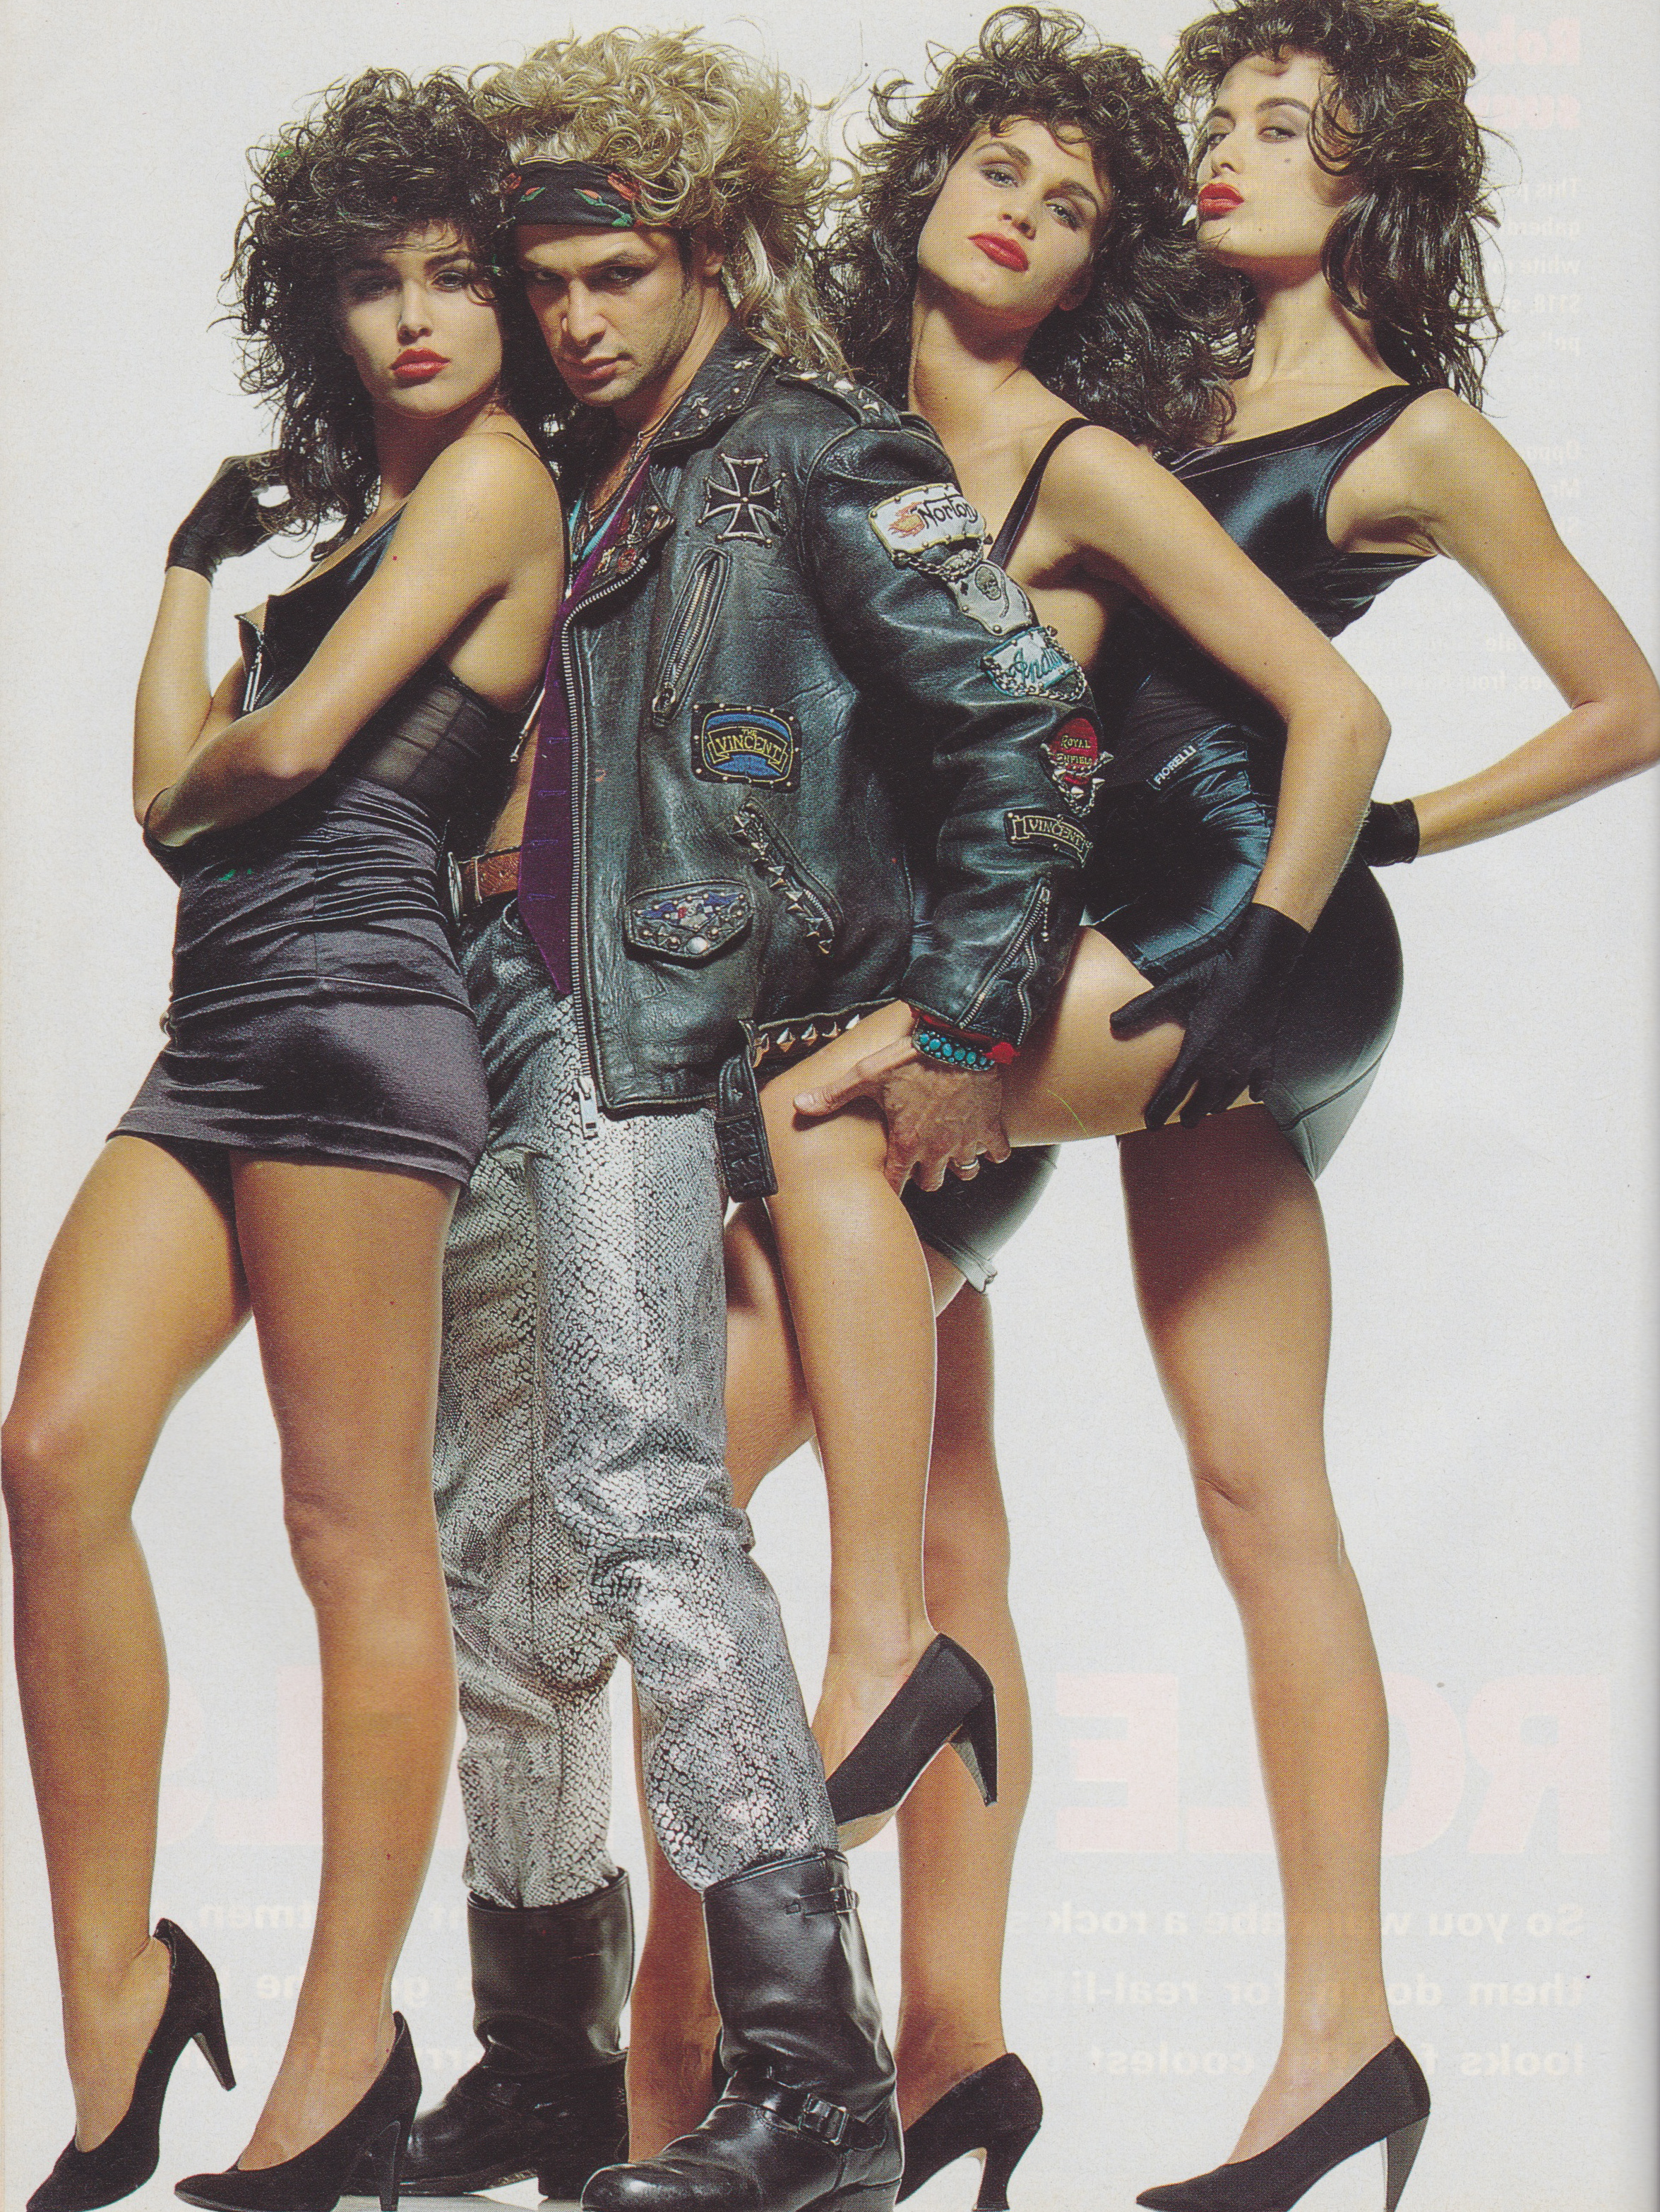 Cosmopolitan September 1991 | Rock n Role Models (Toneya Bird, Francoise Skeates & 2 Unknowns) 03.jpeg